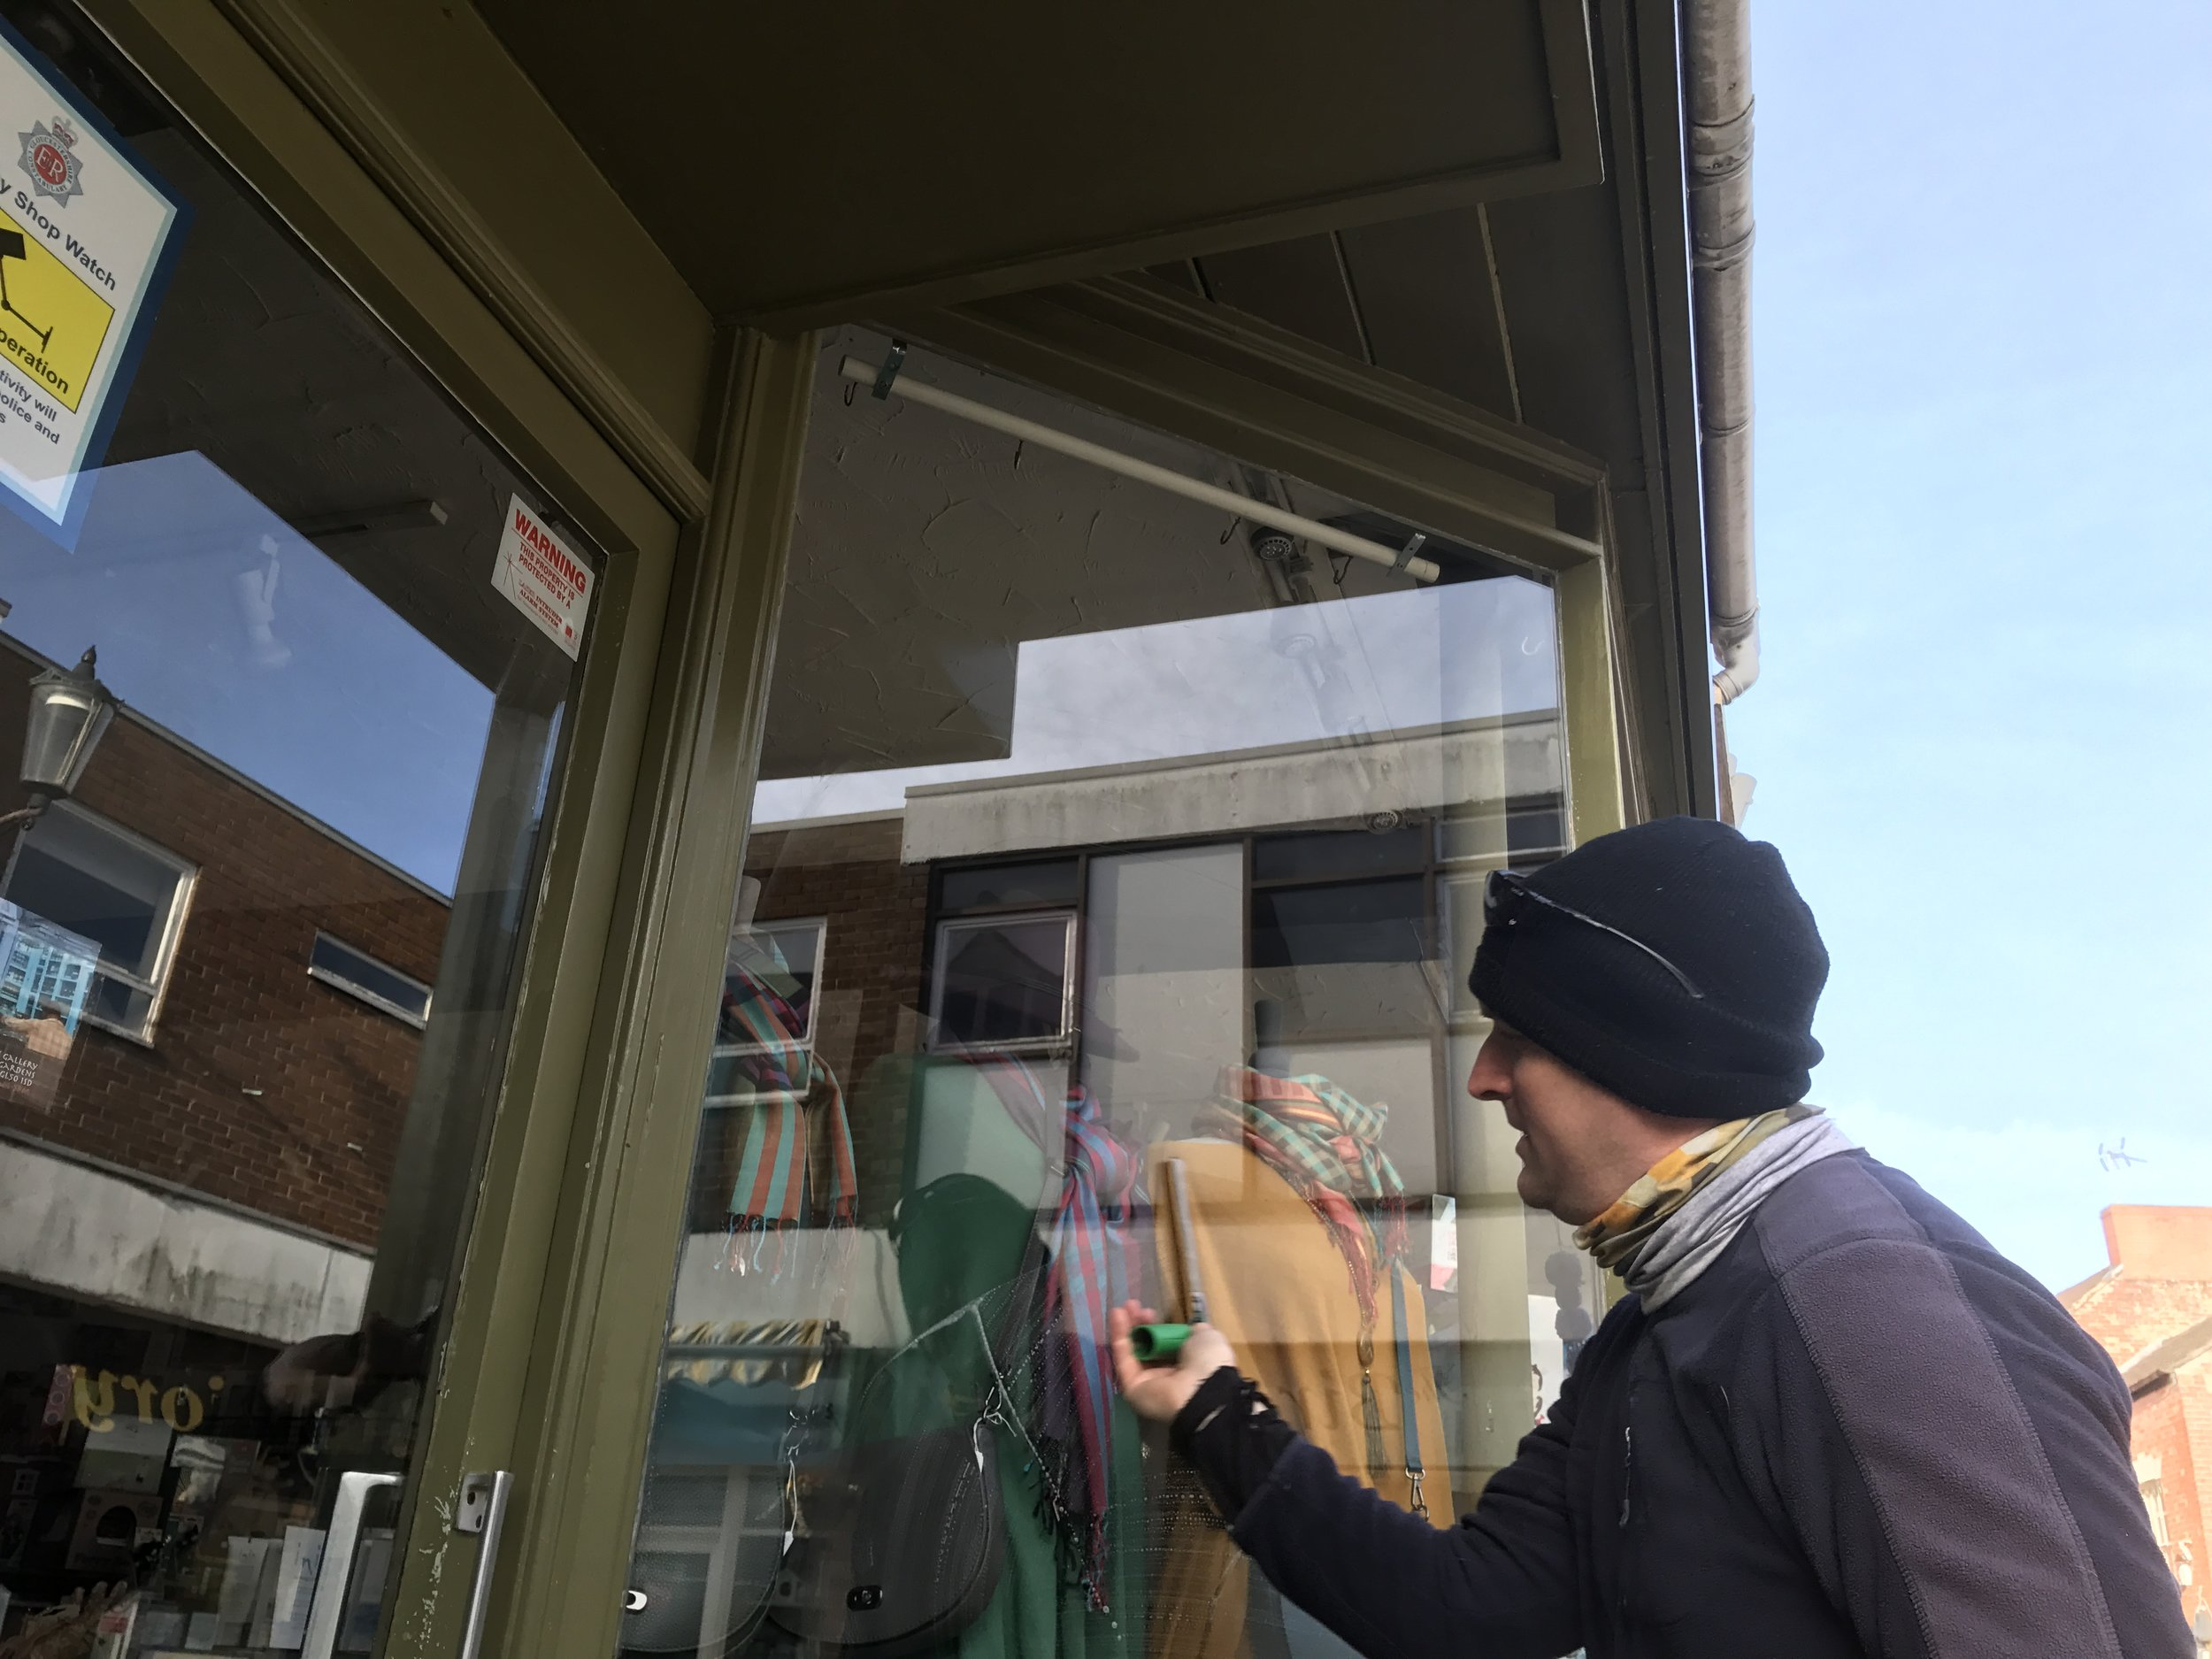 Cleaning 'That New Shop' windows in Dursley